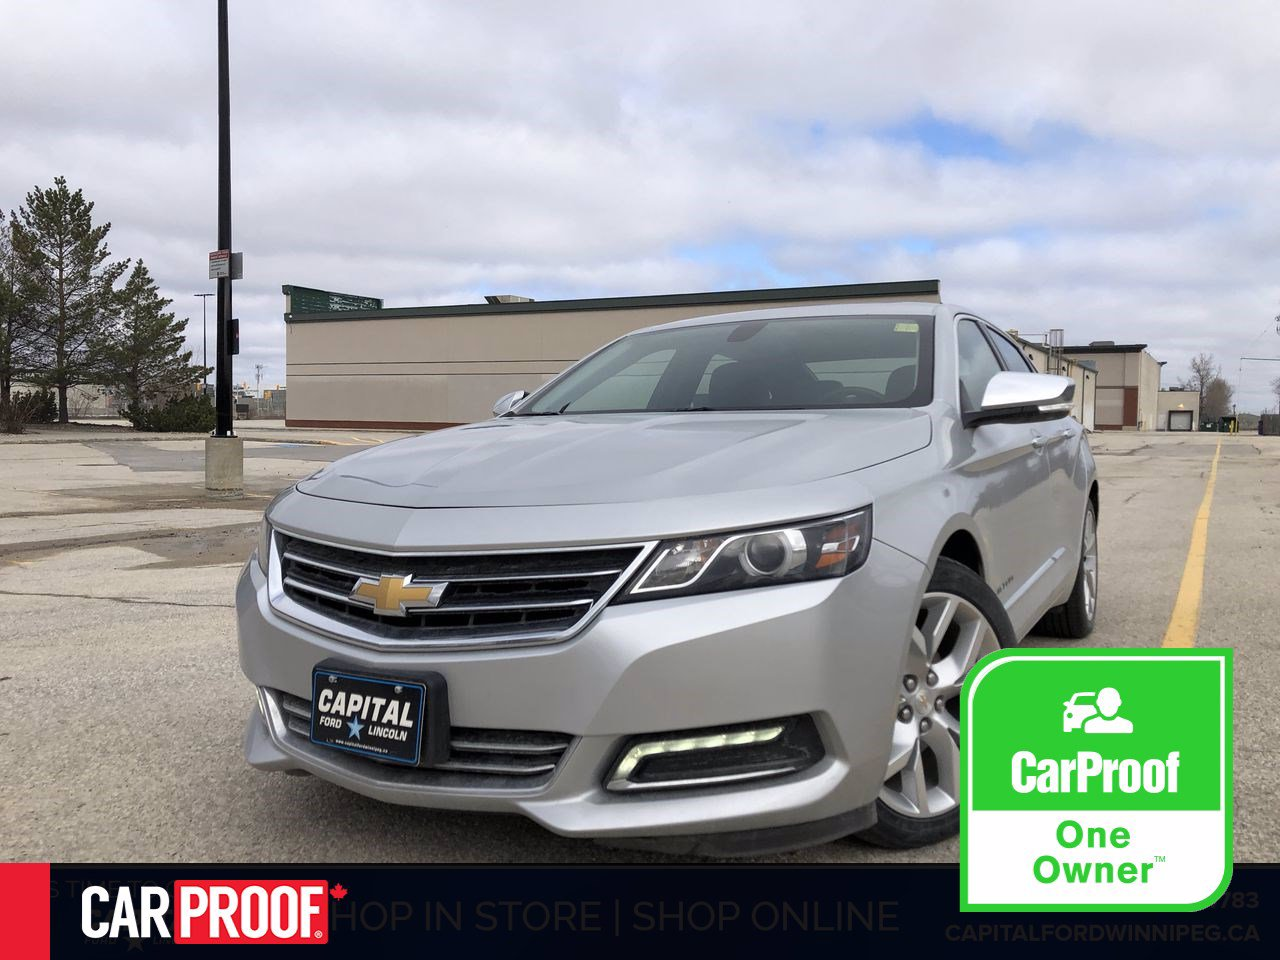 Pre-Owned 2019 Chevrolet Impala Premier Edition- Tire, Rim and Key FOB Warranty!